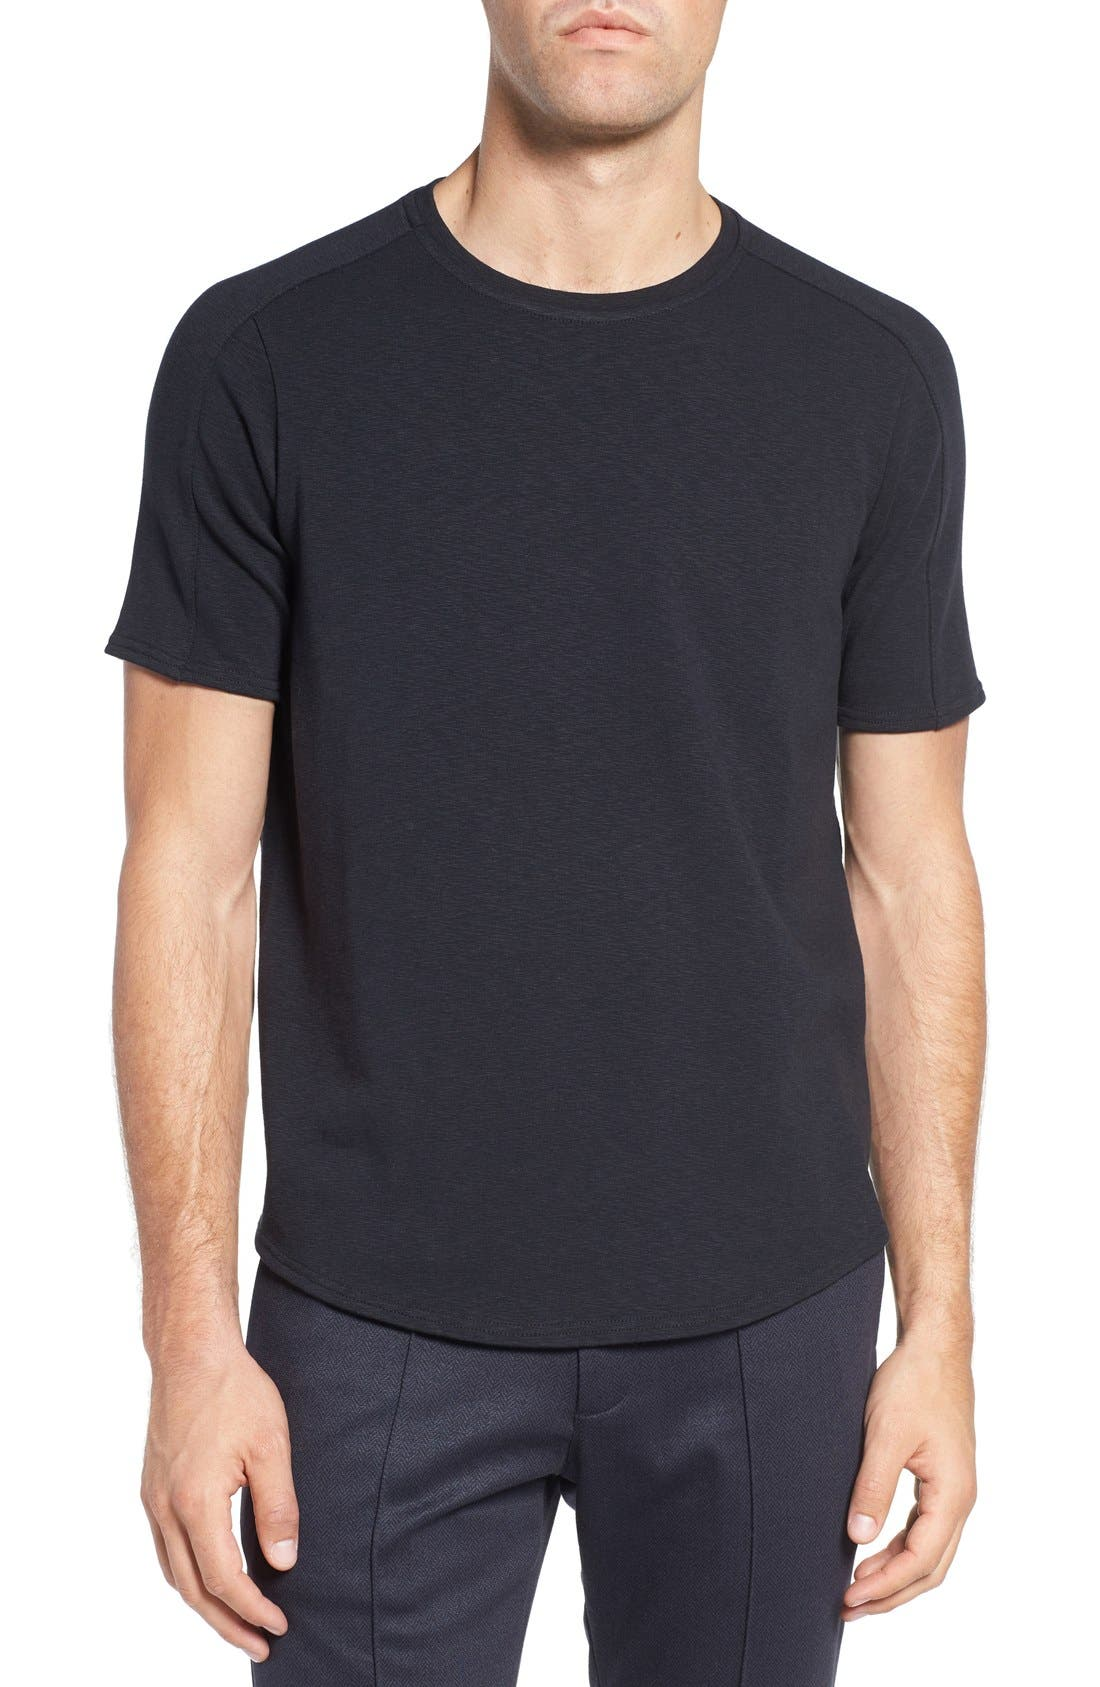 Douglas Cotton Blend T-Shirt,                             Main thumbnail 1, color,                             001